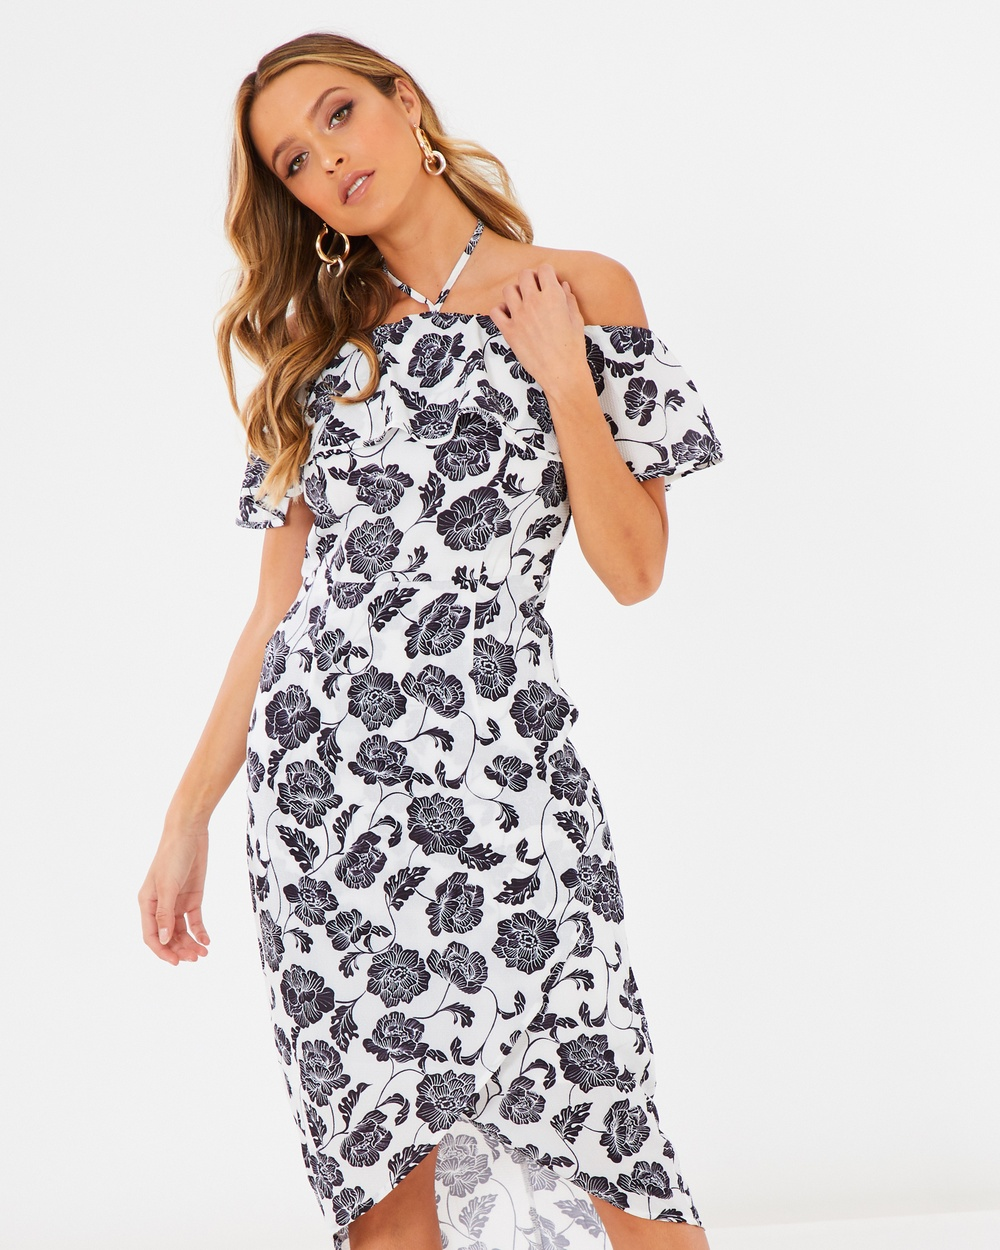 Calli Amara Halterneck Dress Dresses Black & White Amara Halterneck Dress